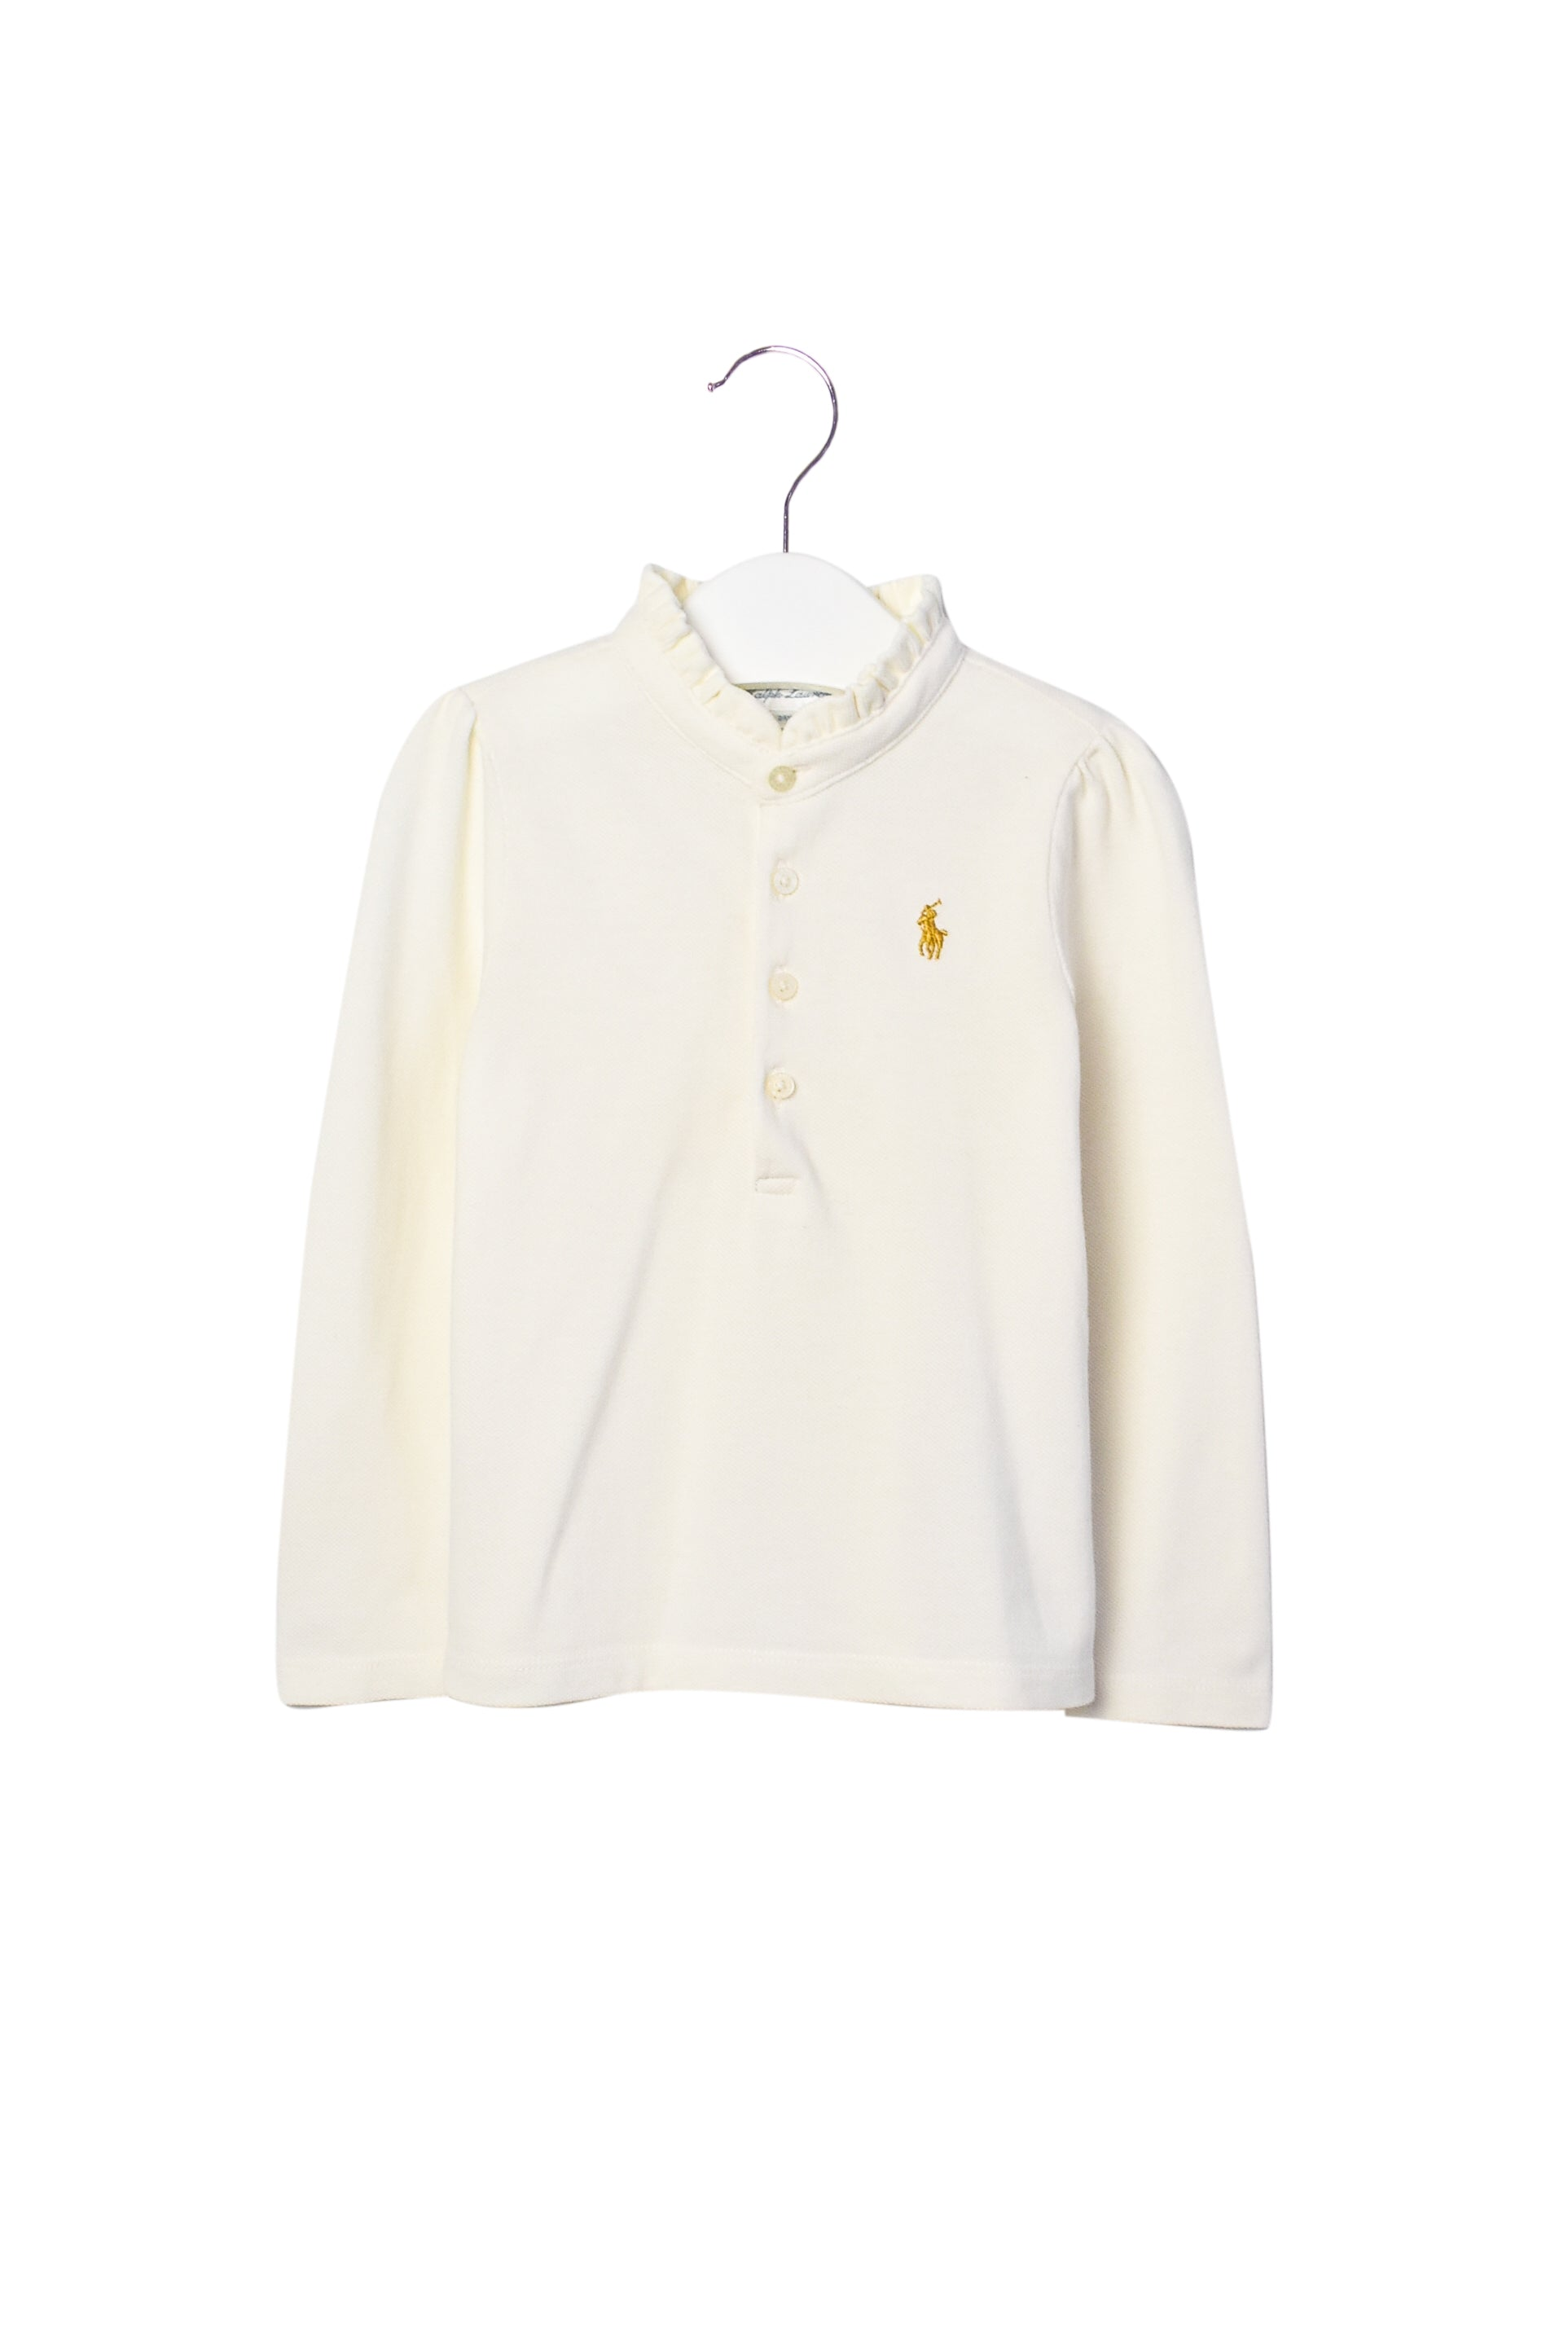 10006701 Ralph Lauren Baby~ Top 24M at Retykle